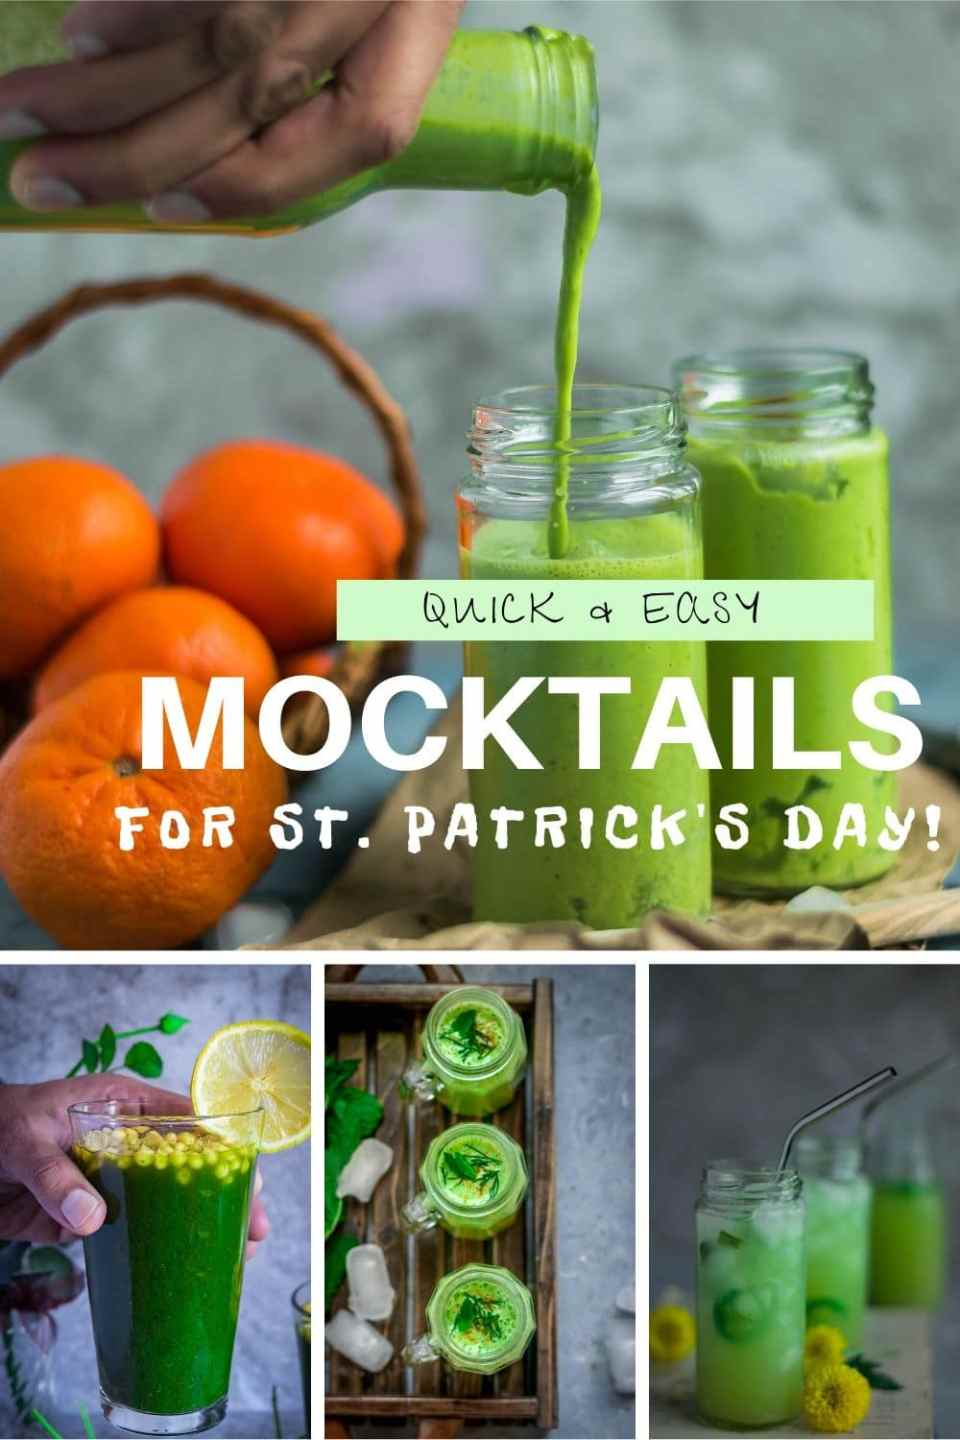 4 image collage of Green Drinks For St. Patrick's Day with text on top